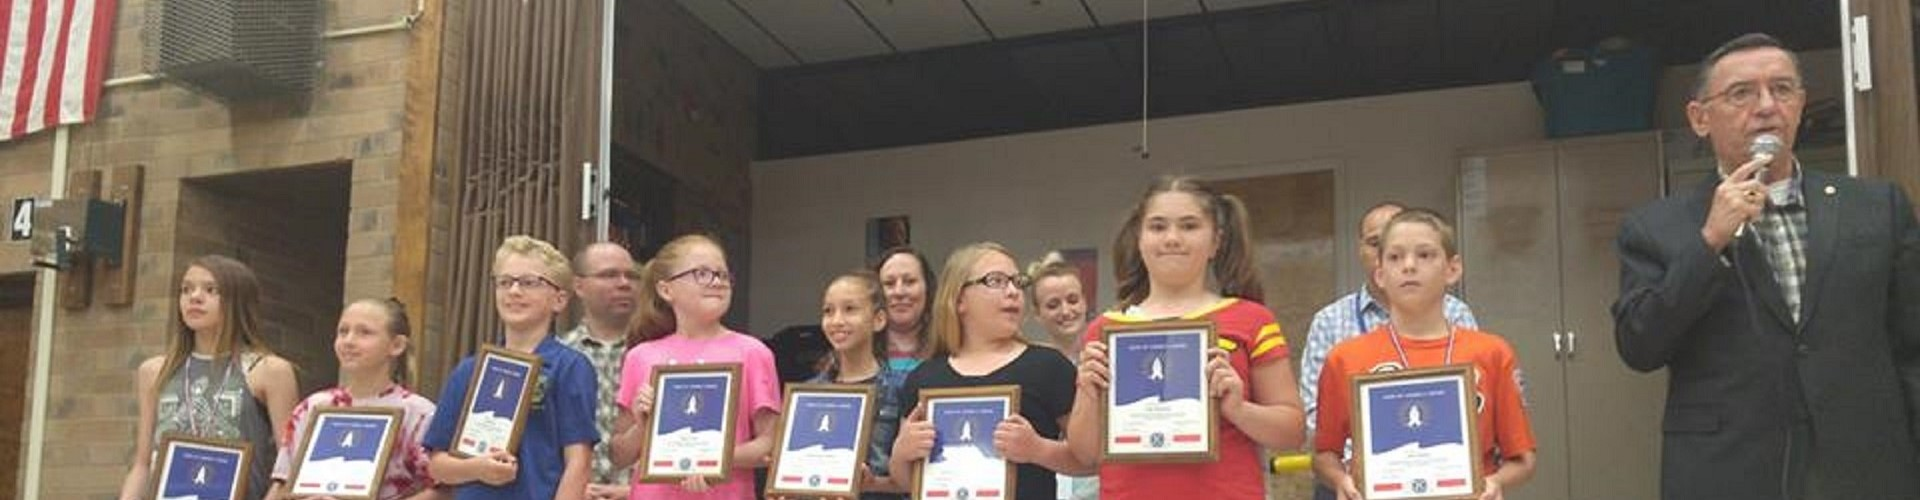 Fifth Grade Awards